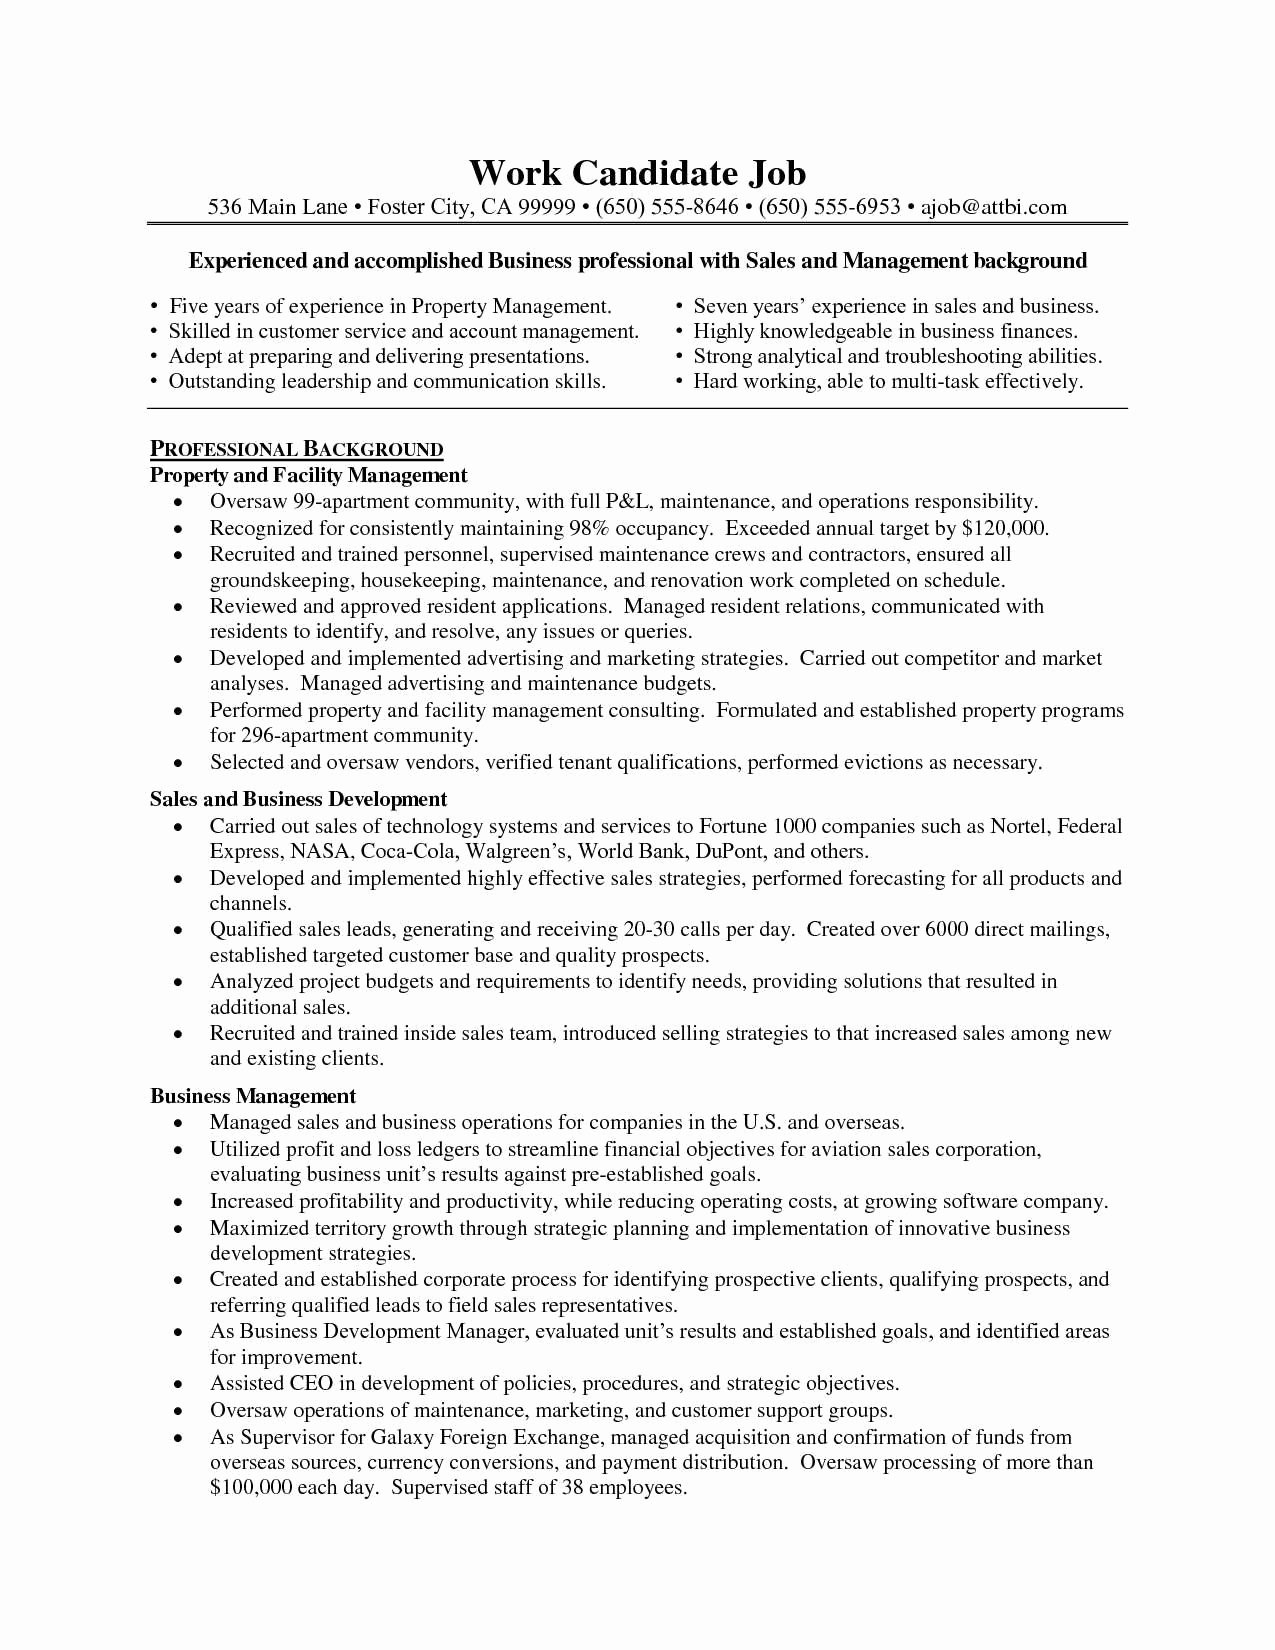 Hotel Housekeeping Job Description for Resume New Housekeeping Description for Resume Last Best S Hotel